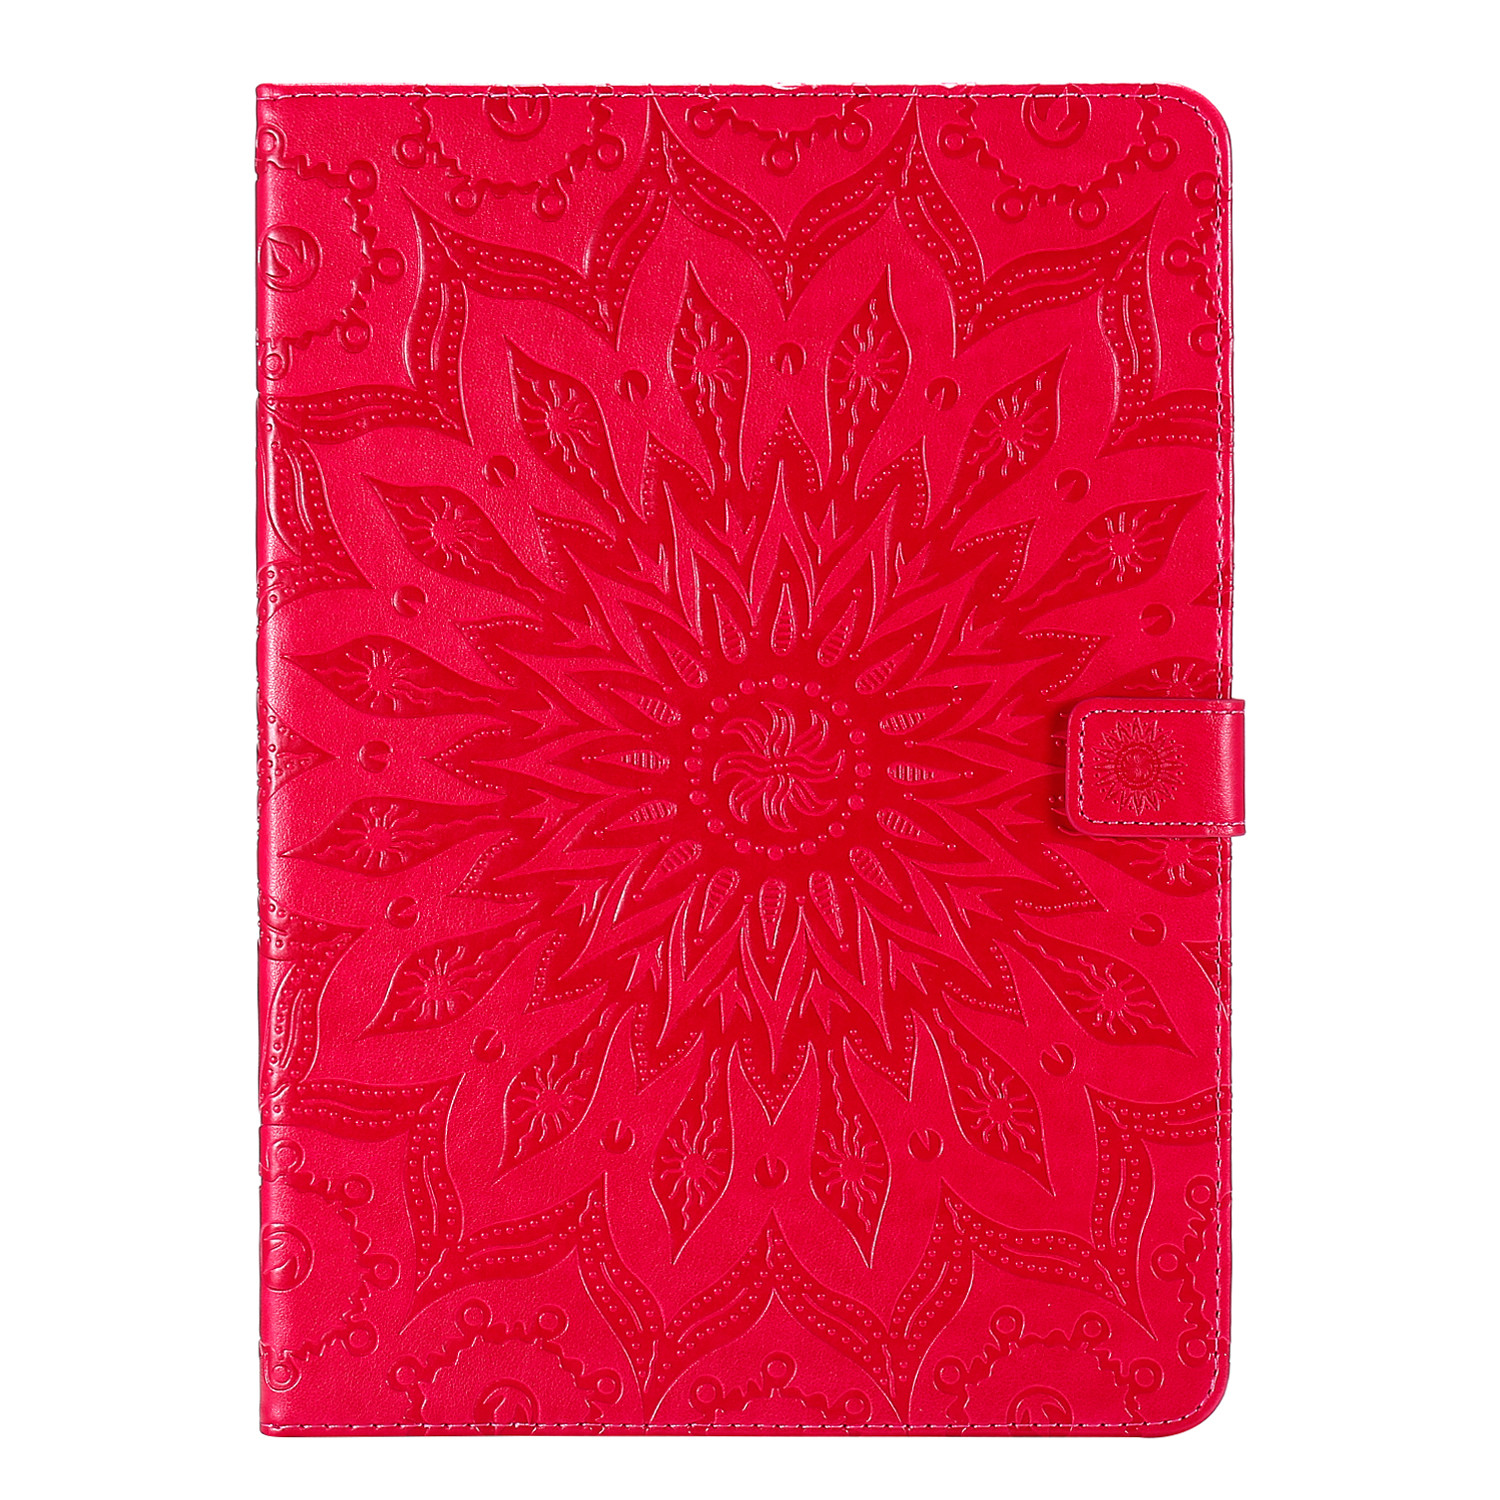 8 Beige Flower 3D Embossed Cover for iPad Pro 12 9 Case 2020 Leather Protective Shell Skin for